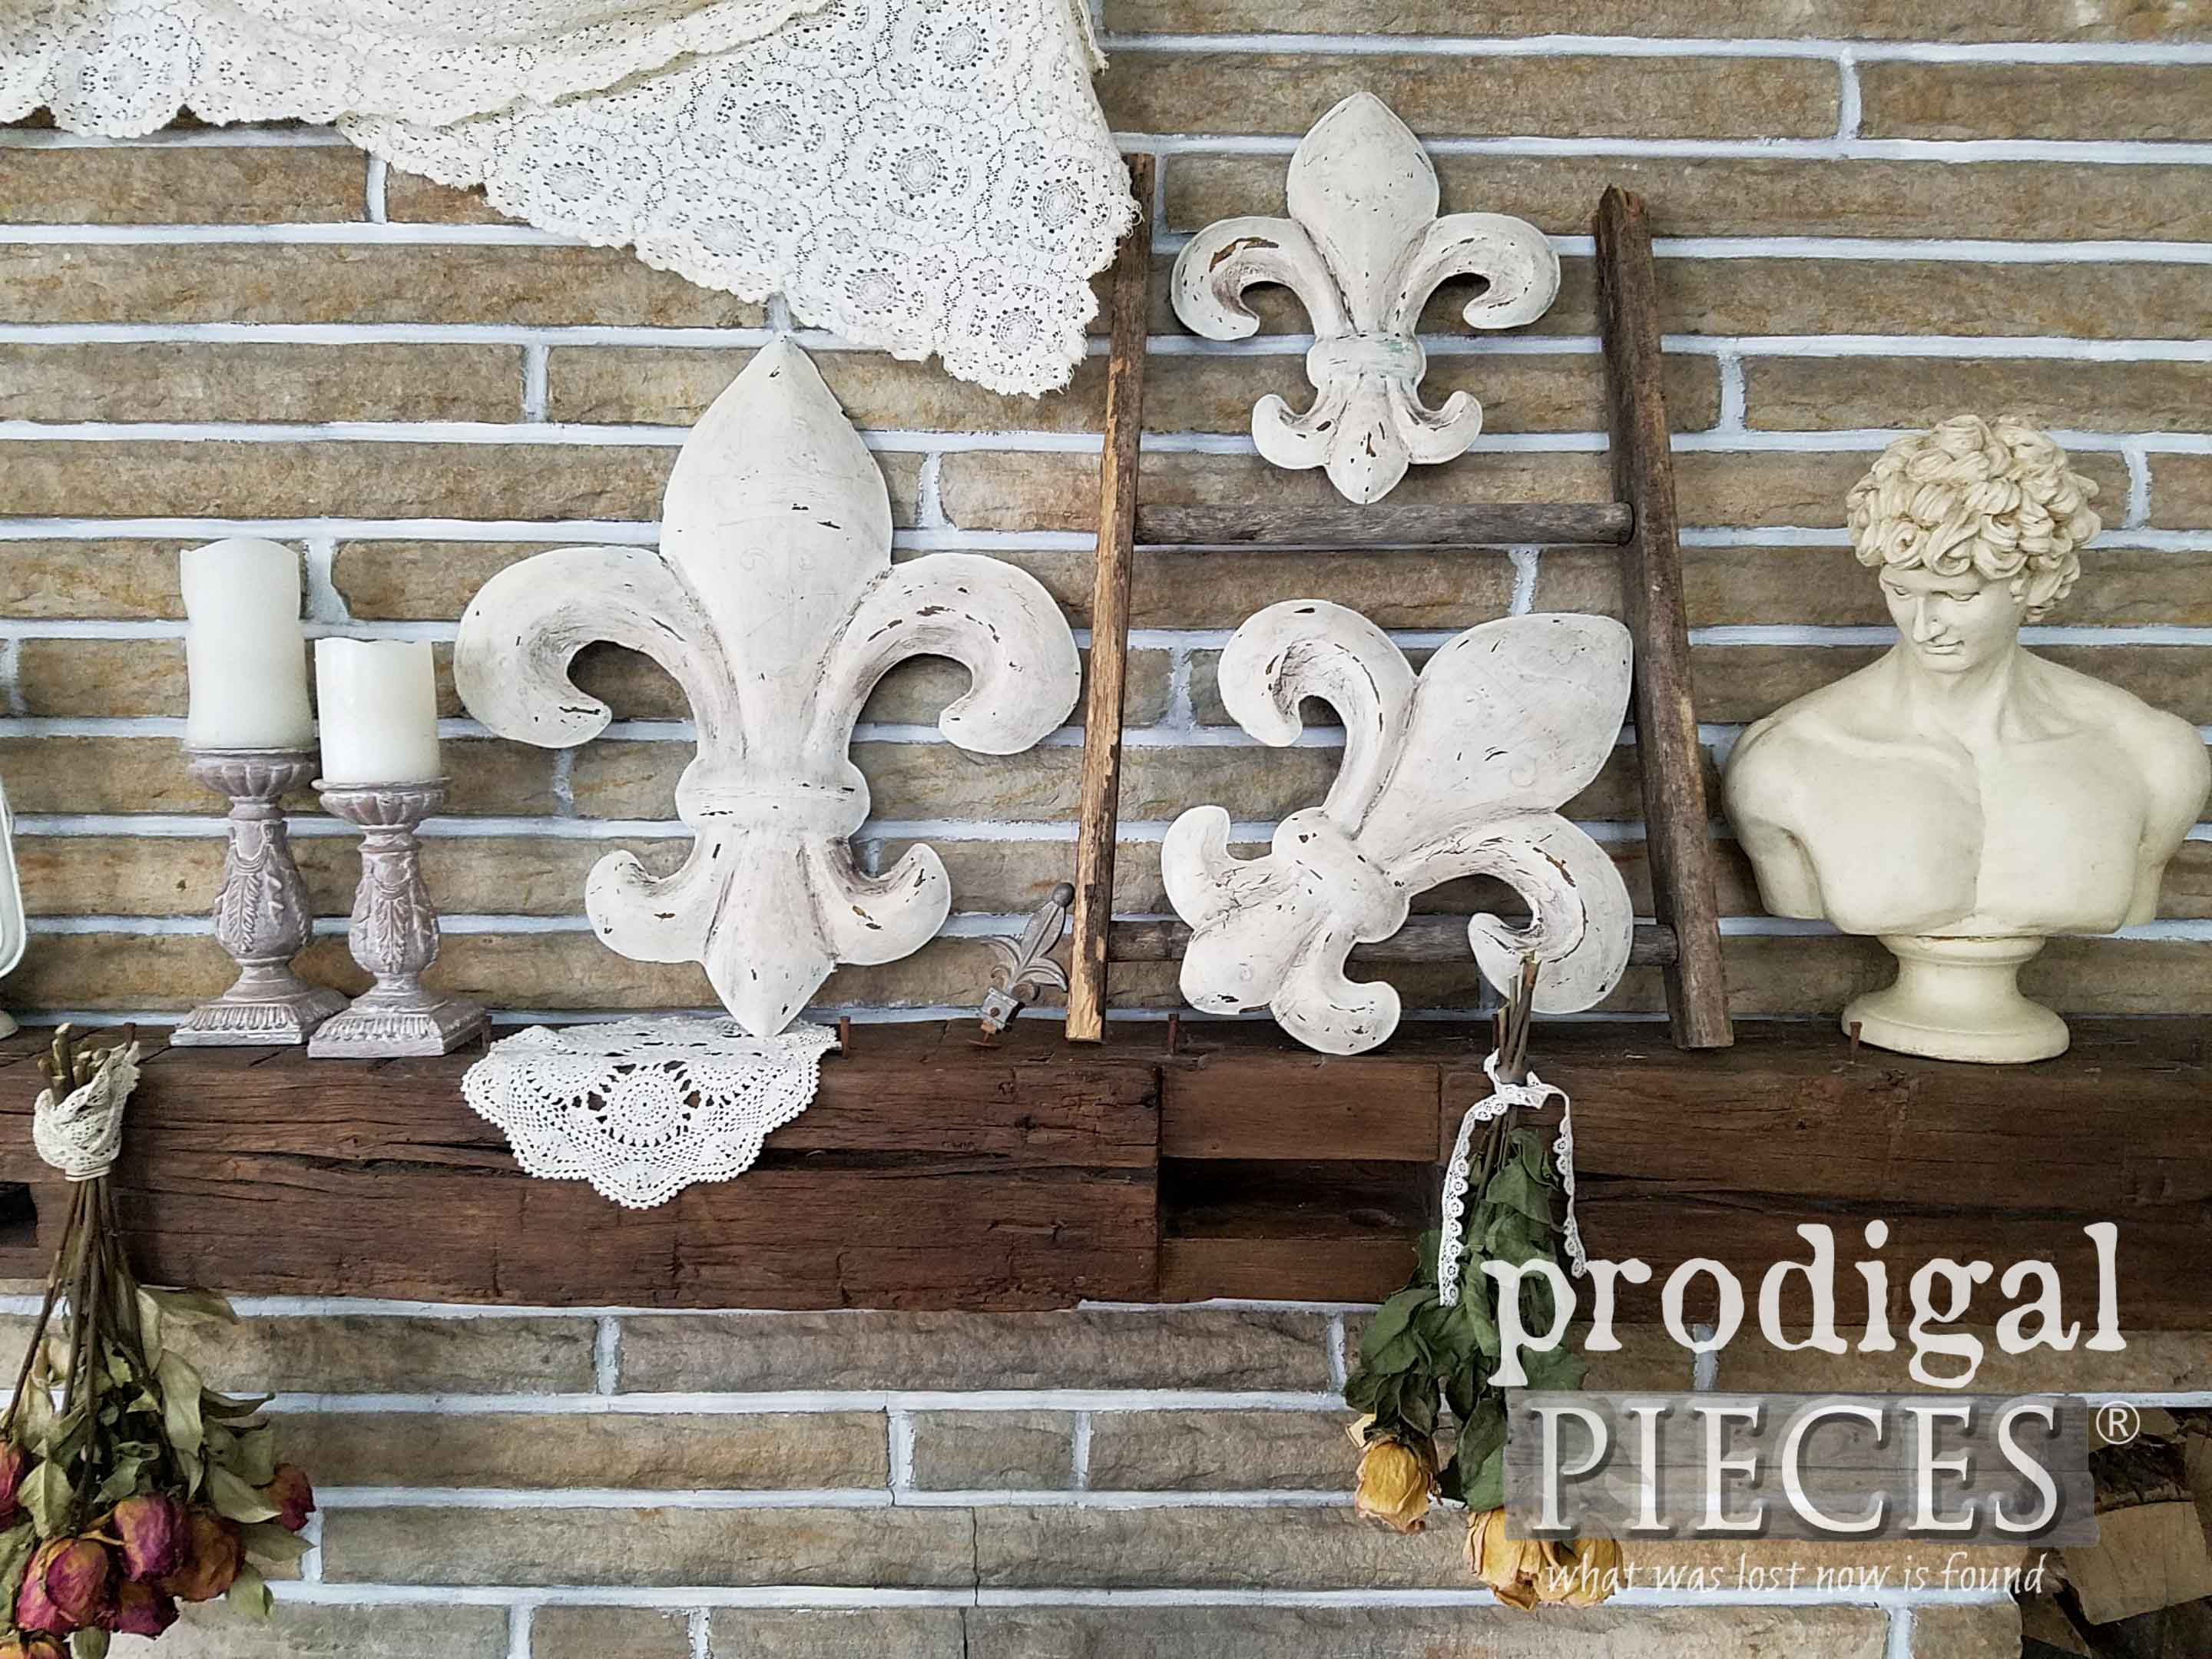 Fleur De Lis Wall Art ~ From Thrifted To Fabulous – Prodigal Inside 2 Piece Metal Wall Decor Sets By Fleur De Lis Living (View 7 of 30)